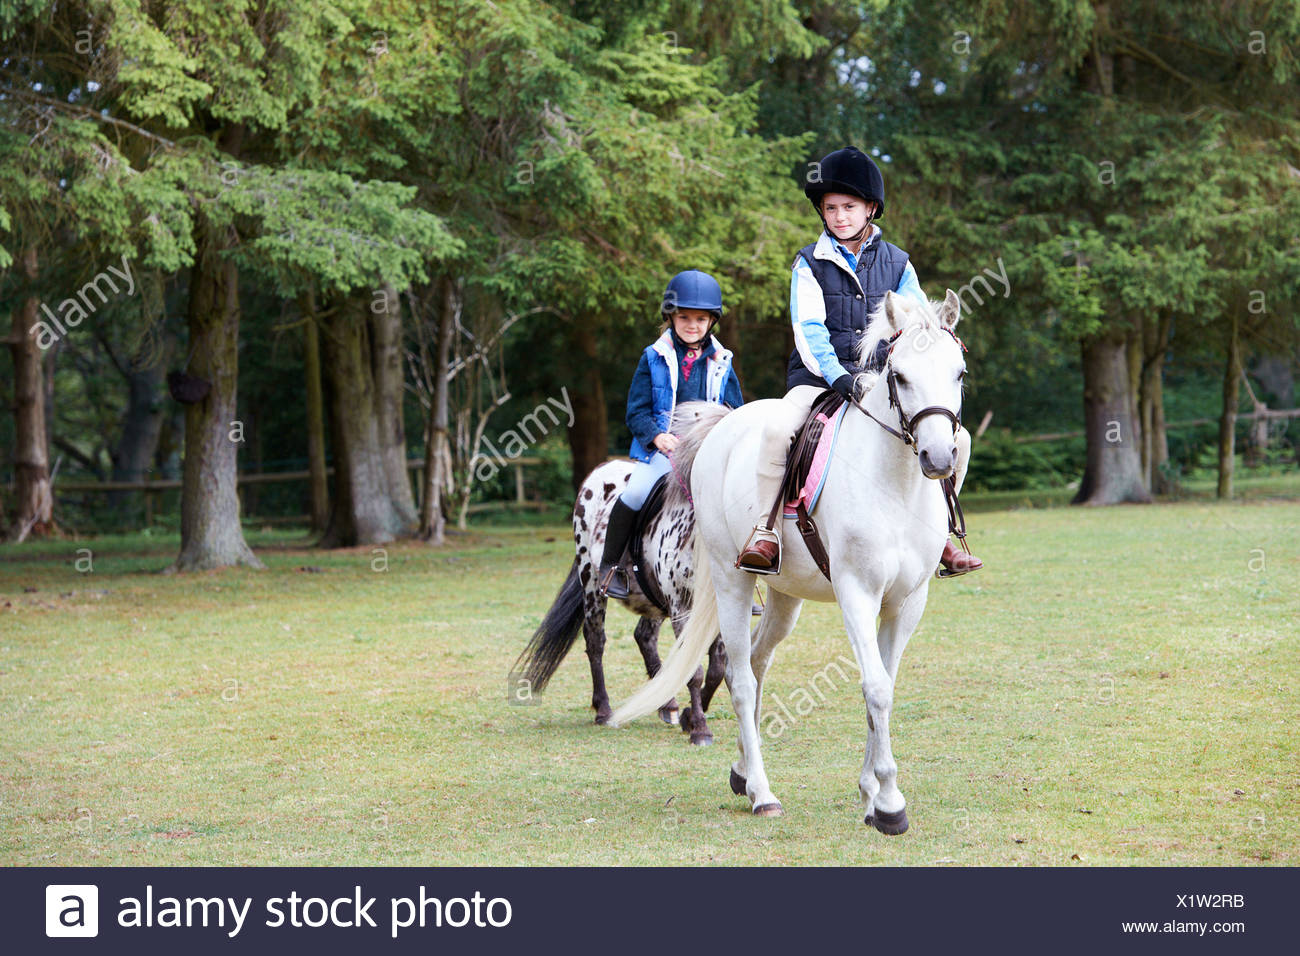 Two girls riding their ponies - Stock Image